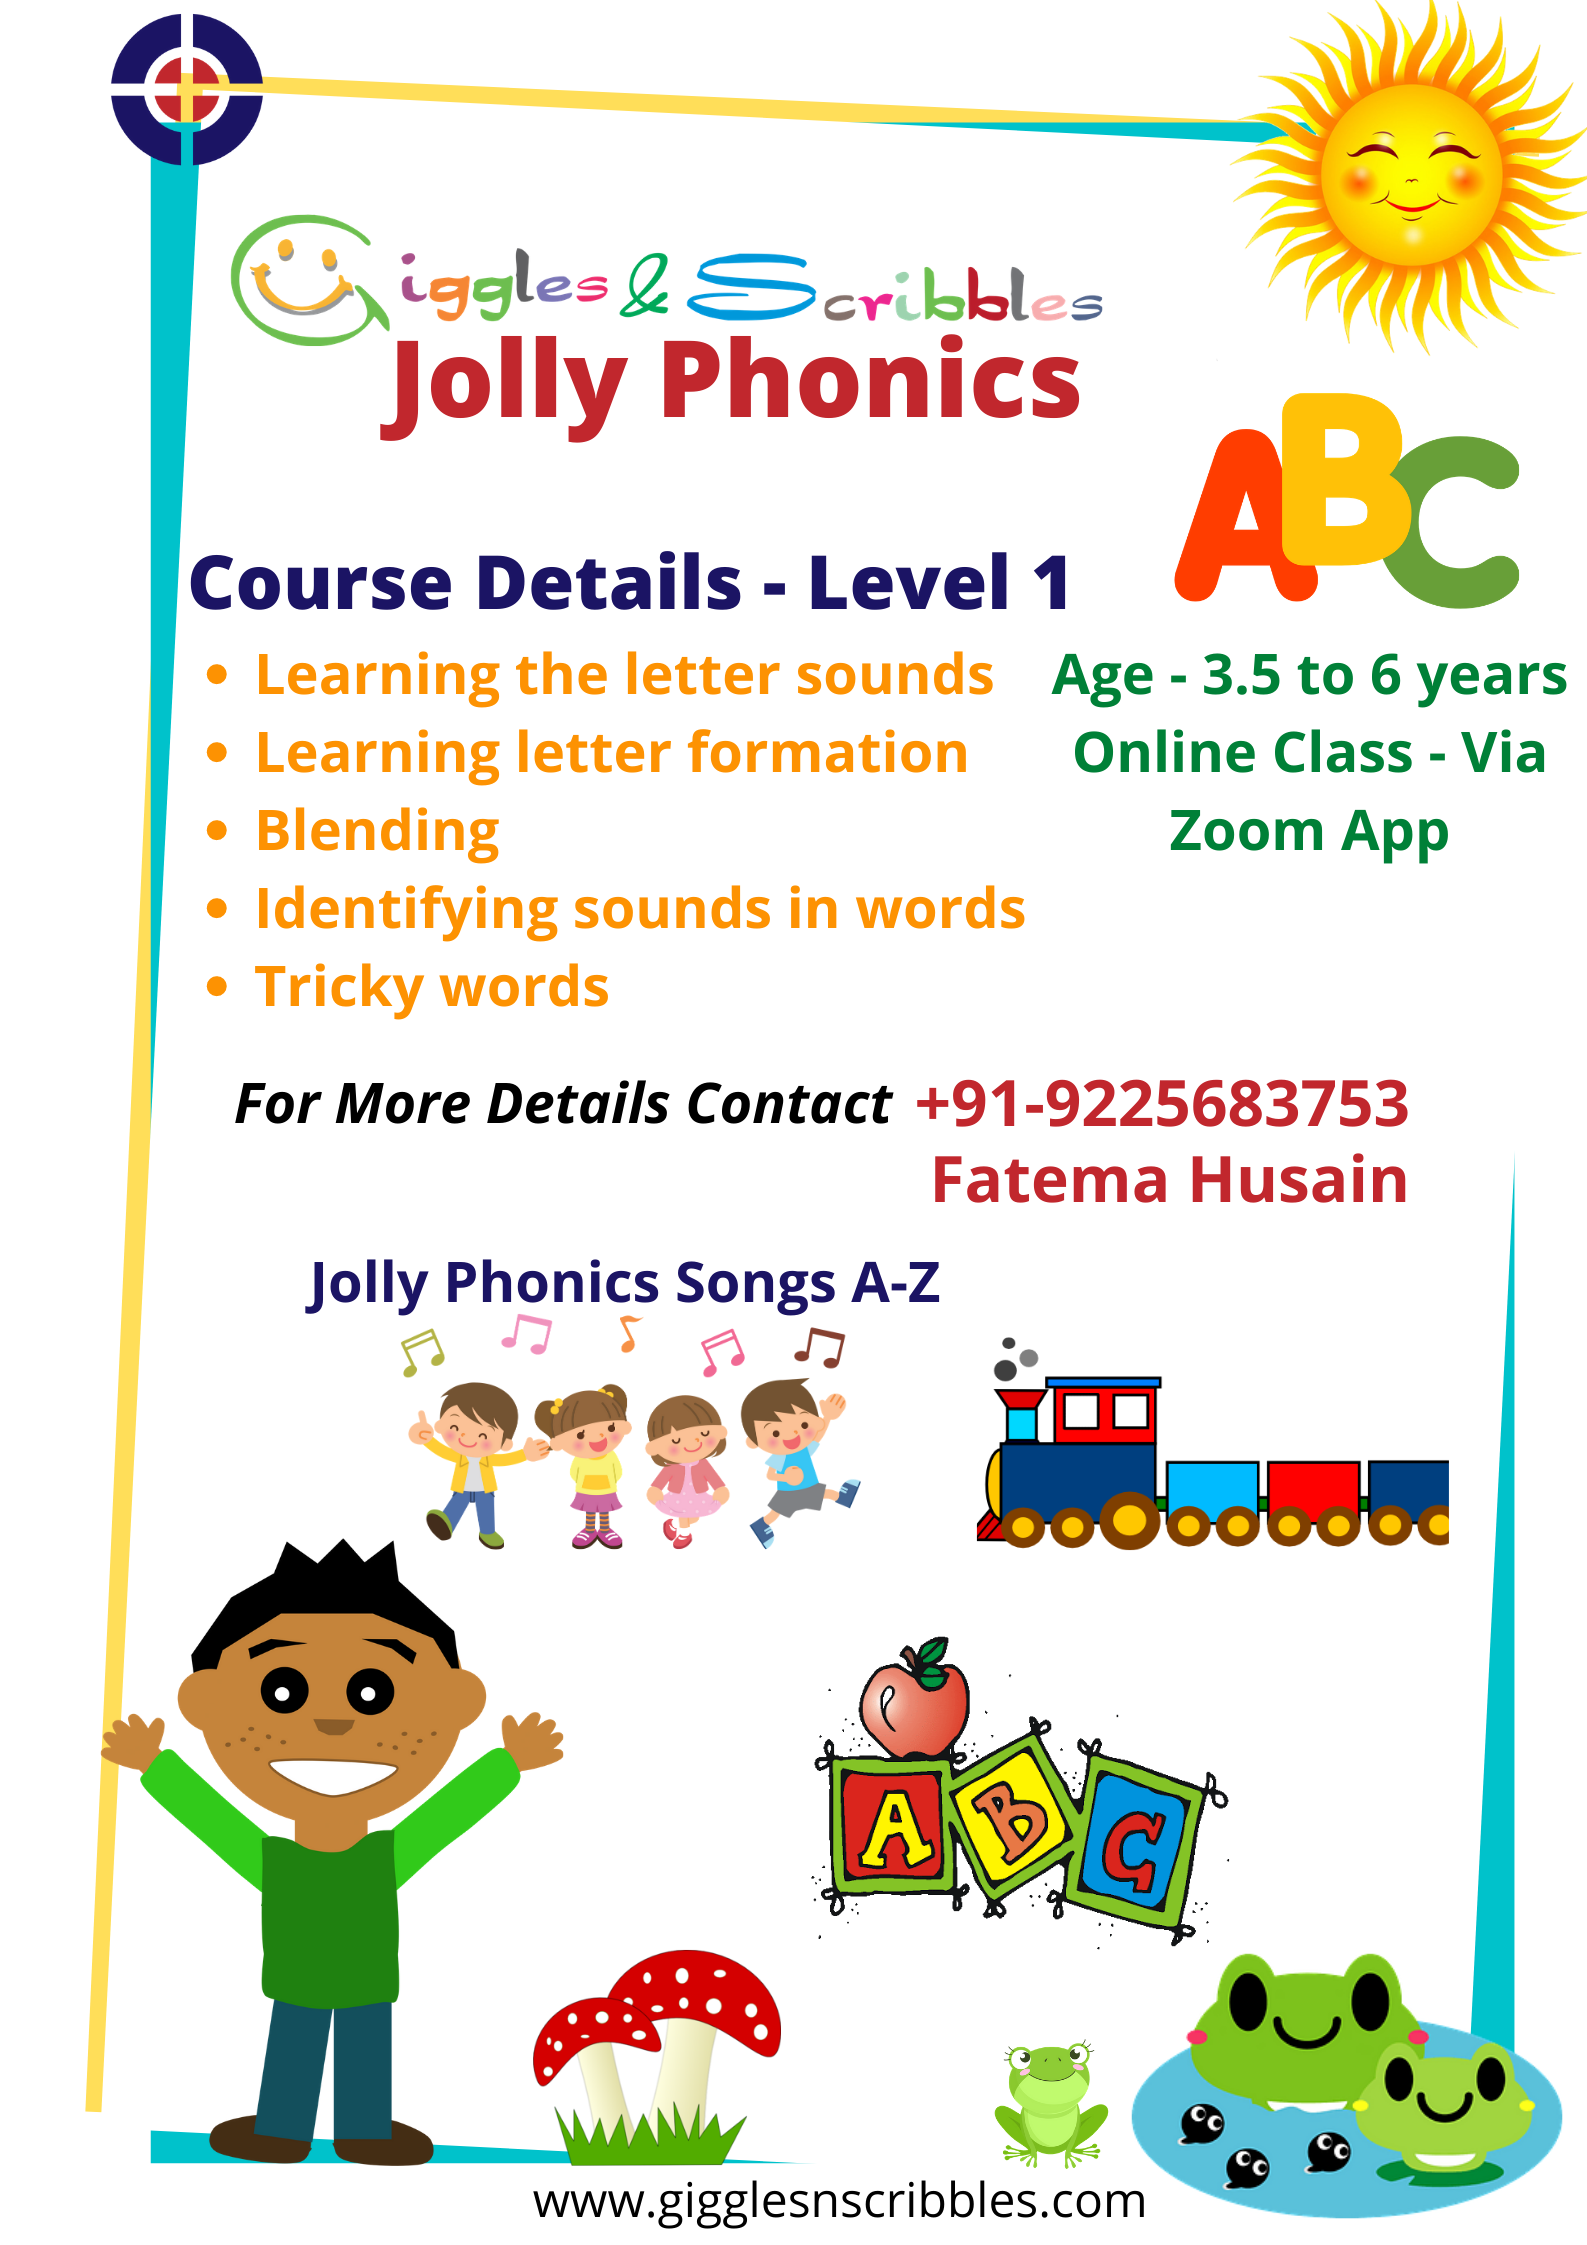 Gns Jolly Phonics Course Level 1 Giggles N Scribbles